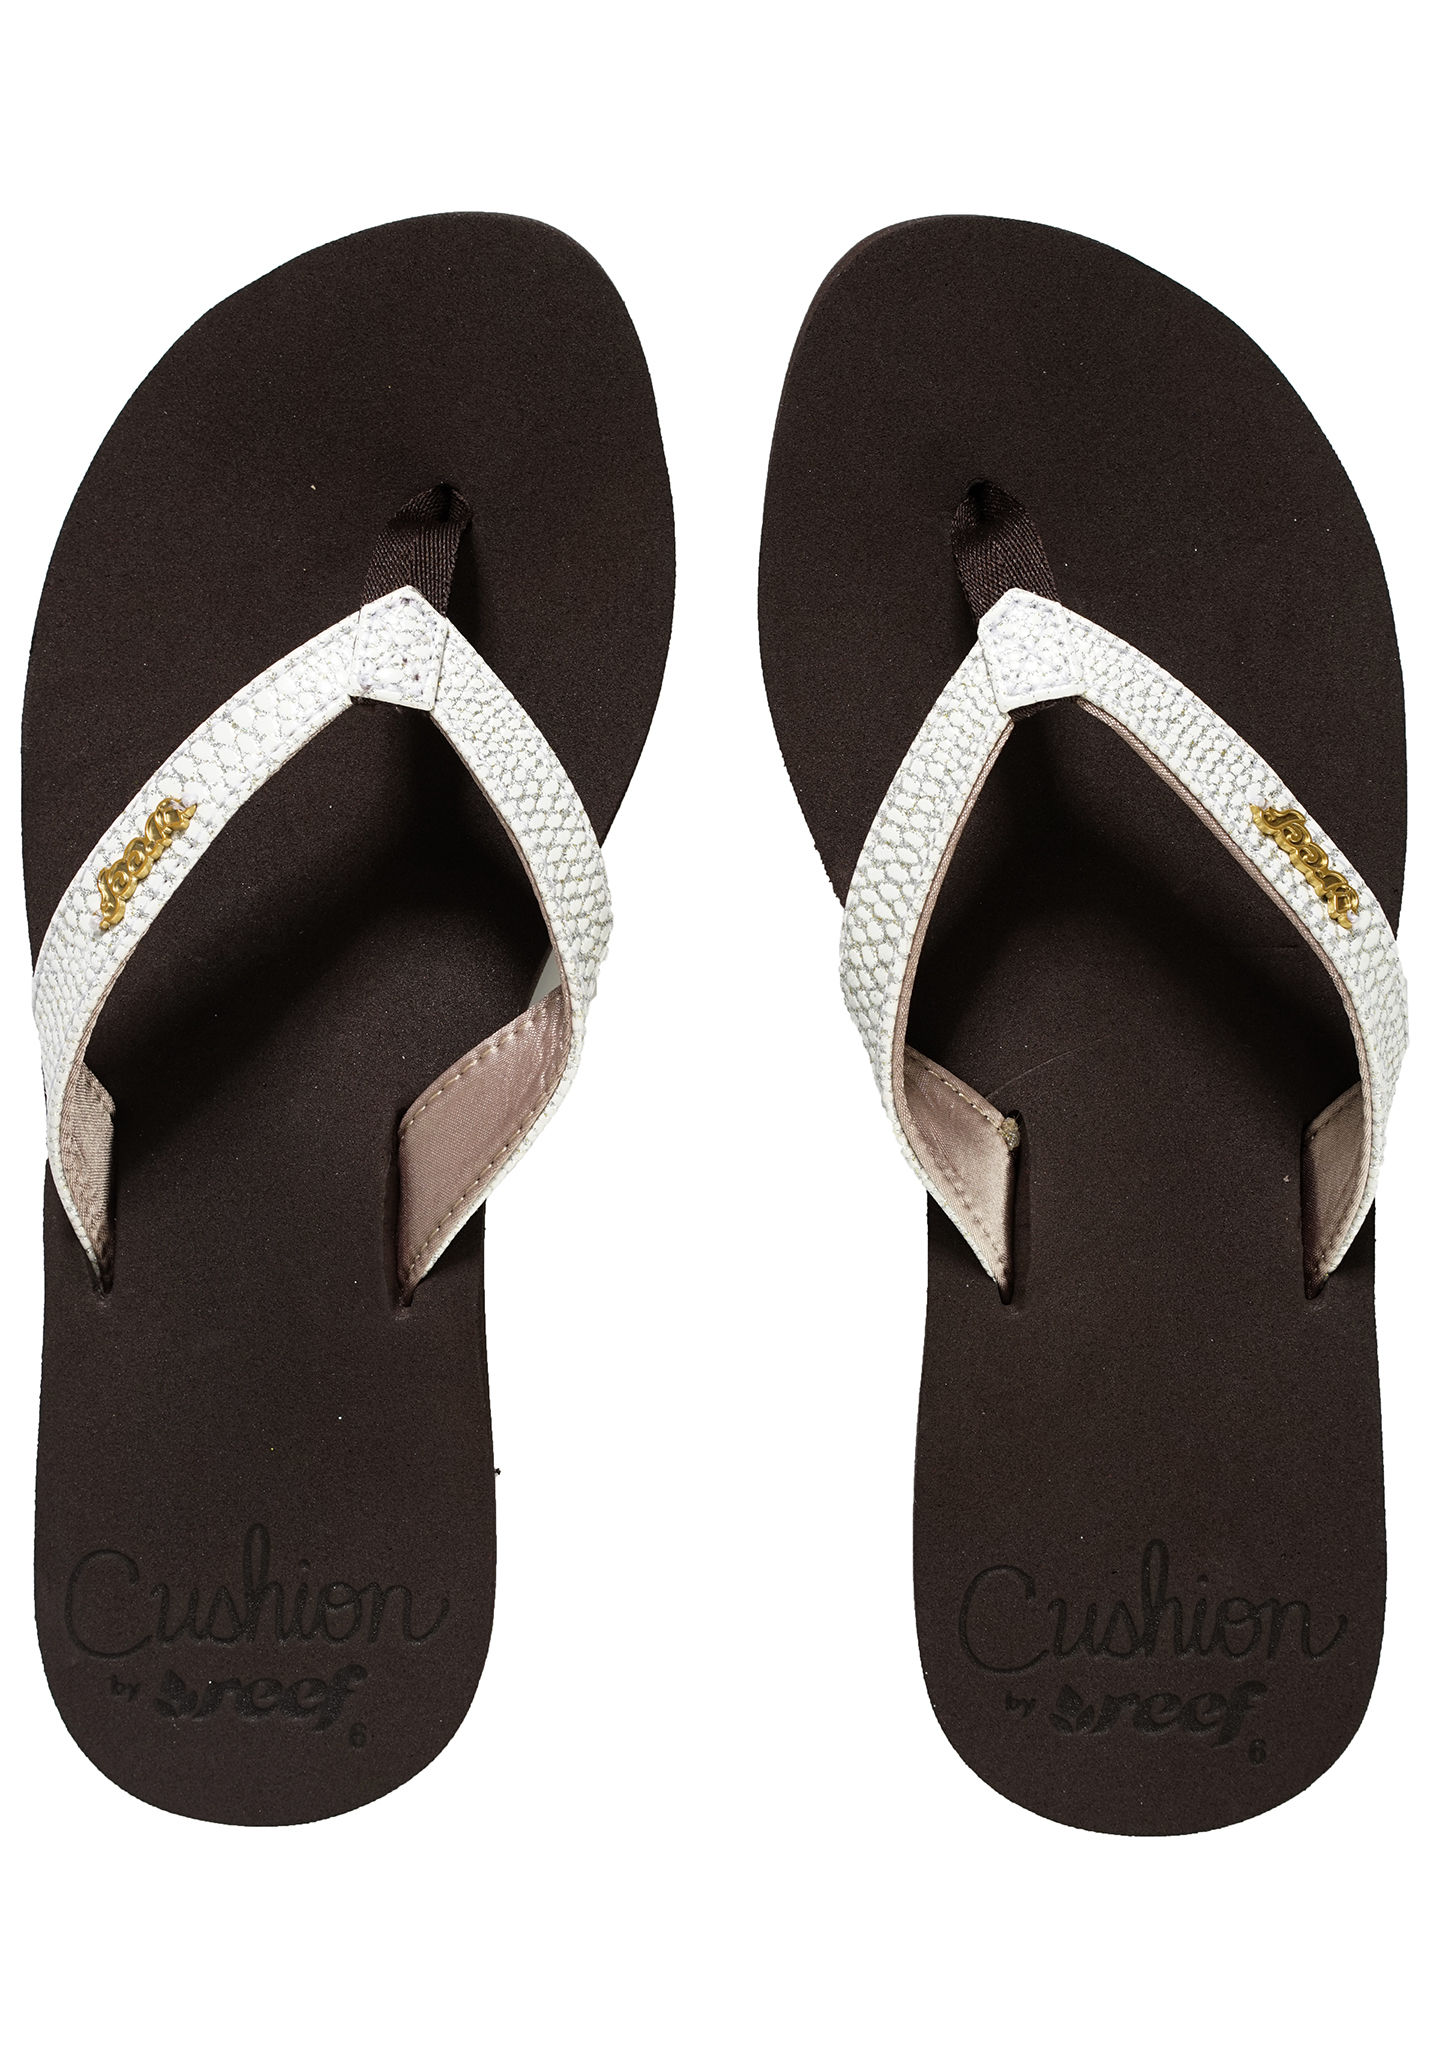 d65788a78b4 reef damen cushion Reef Star Cushion SA - Sandalen für Damen - Braun - Planet  Sports